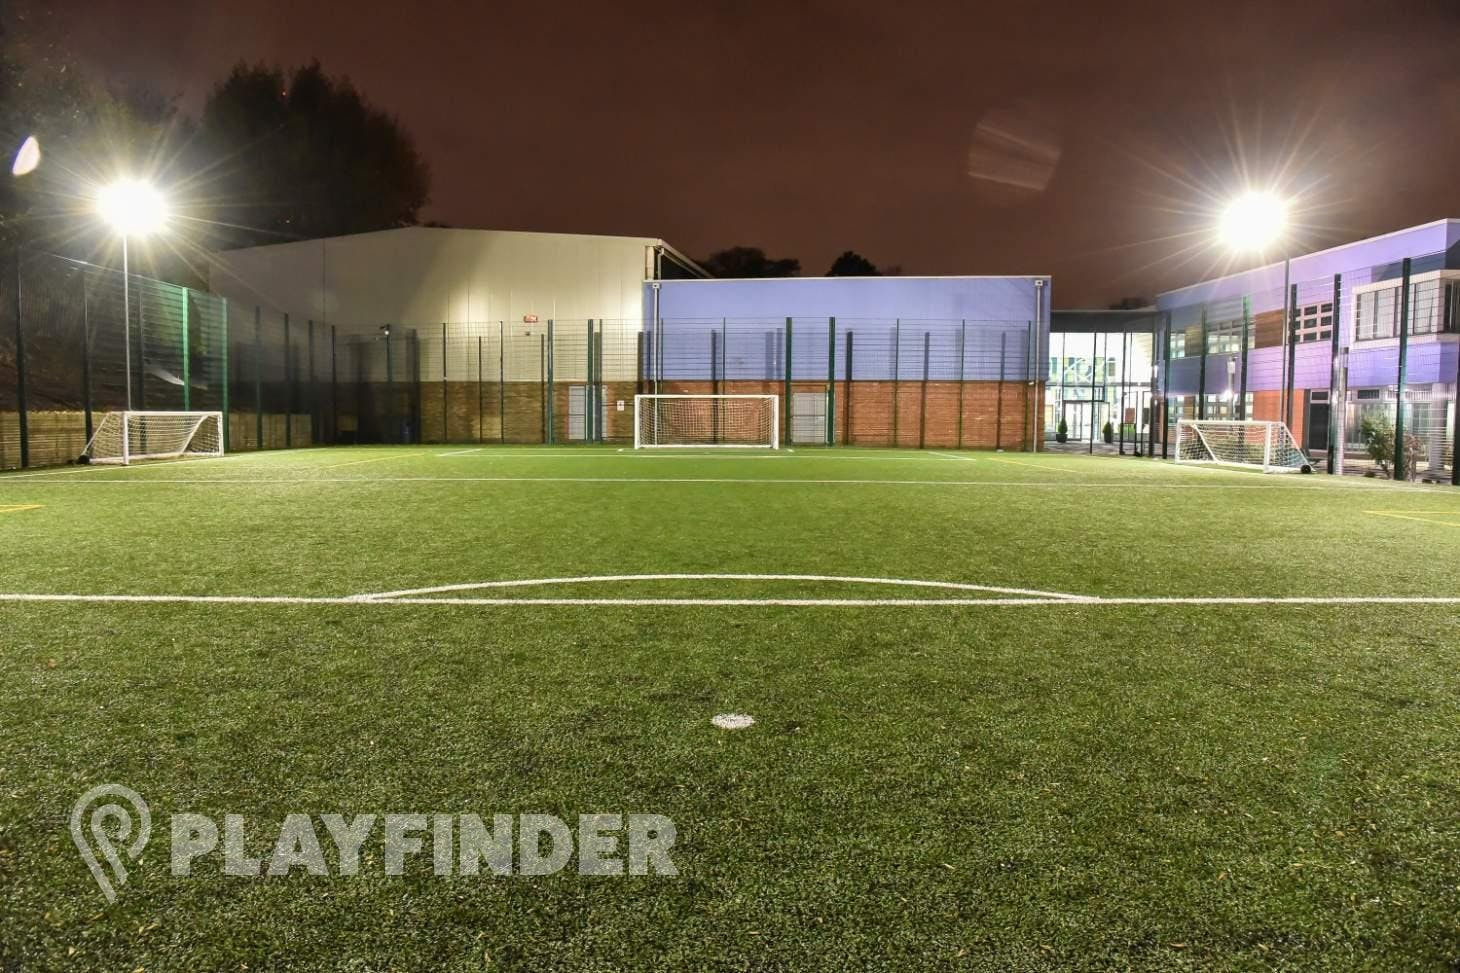 Crystal Palace - Football567.com 7 a side | 3G Astroturf football pitch